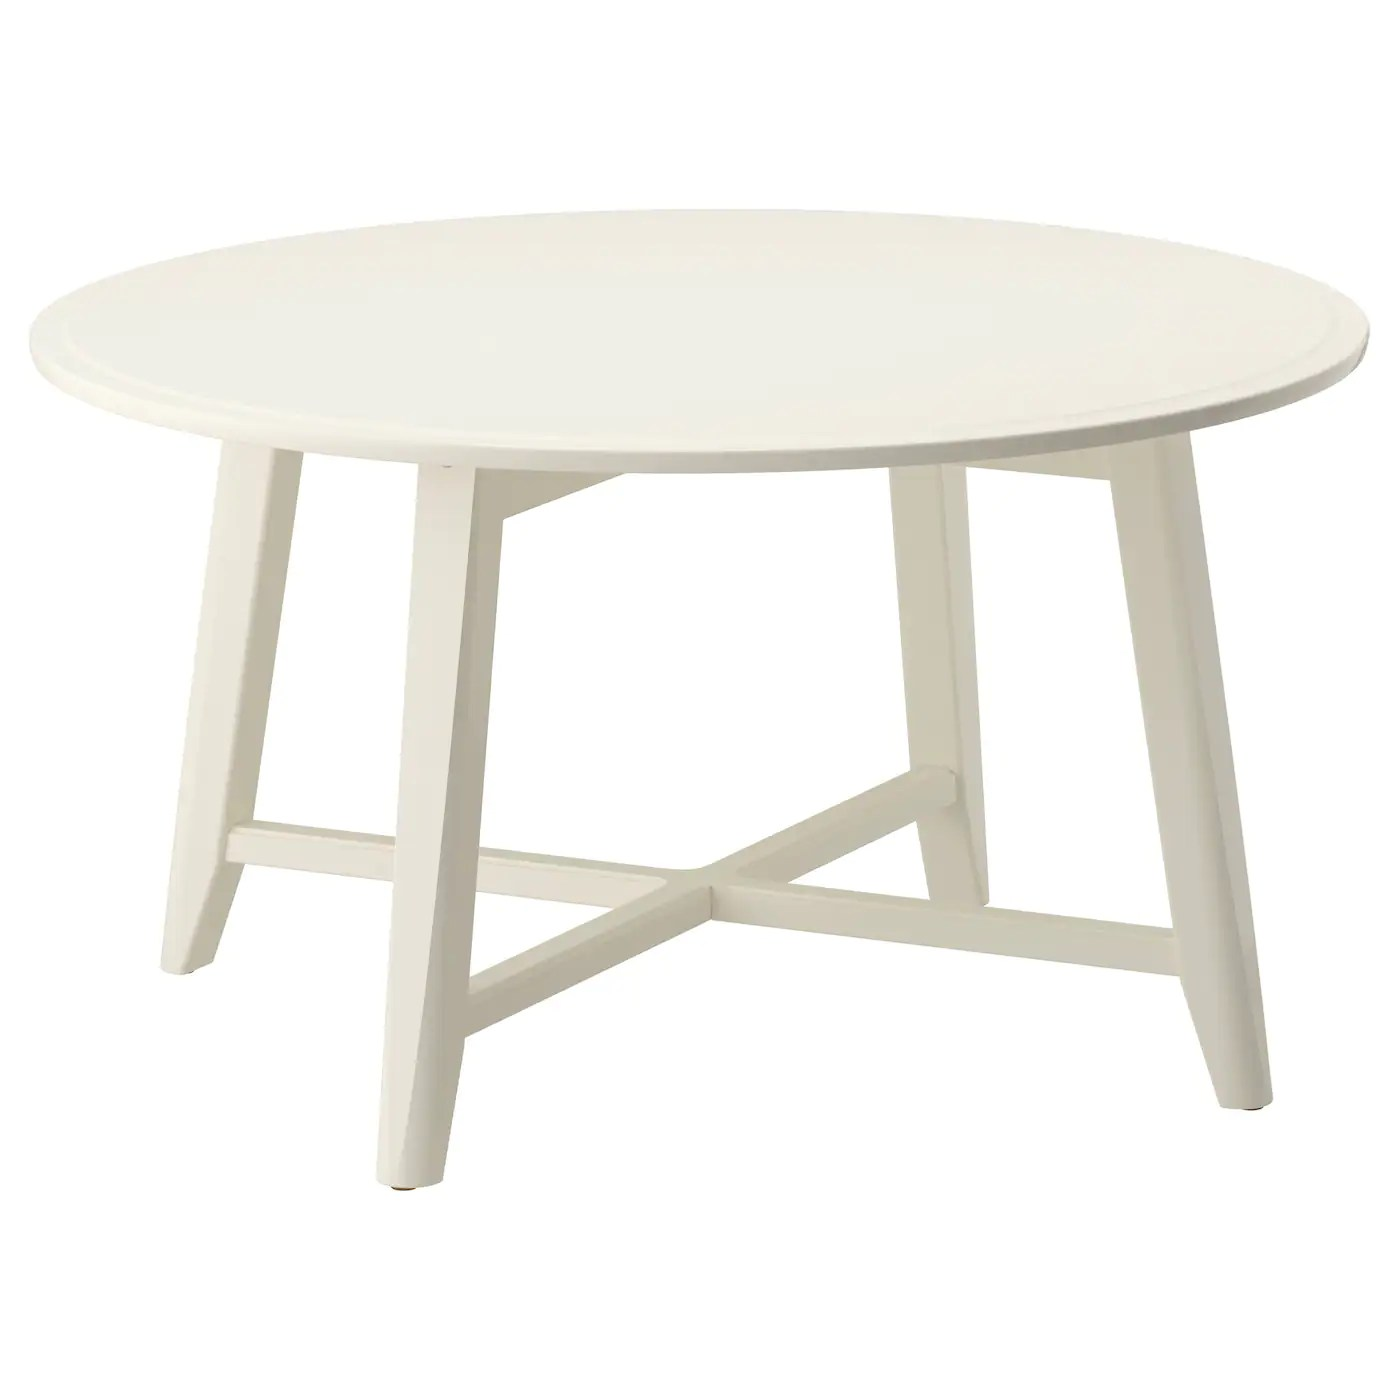 Ikea Couchtisch Oval Coffee Tables Ikea Ireland Dublin